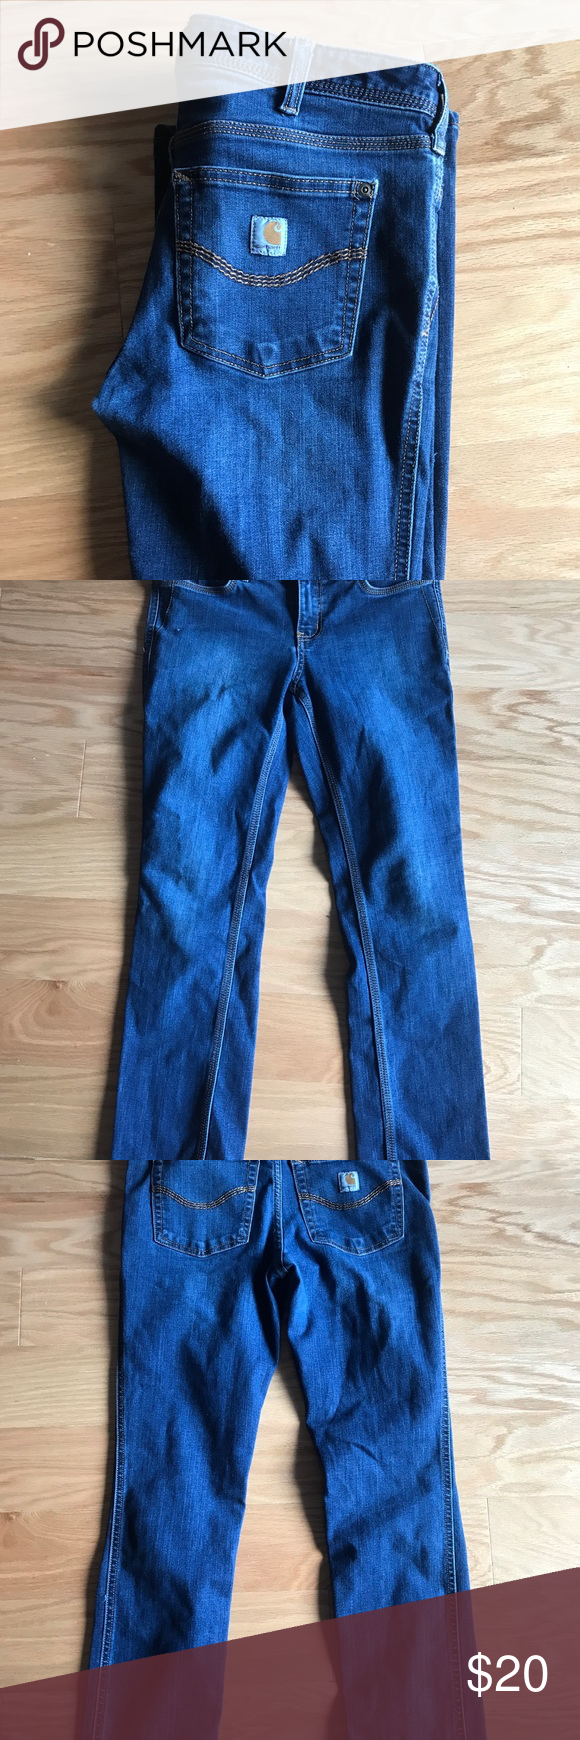 Carhartt women's jeans size 4 short I grew out of this size but love these jeans!! They're in really great condition- even the hems are perfect. Carhartt Jeans Straight Leg #carharttwomen Carhartt women's jeans size 4 short I grew out of this size but love these jeans!! They're in really great condition- even the hems are perfect. Carhartt Jeans Straight Leg #carharttwomen